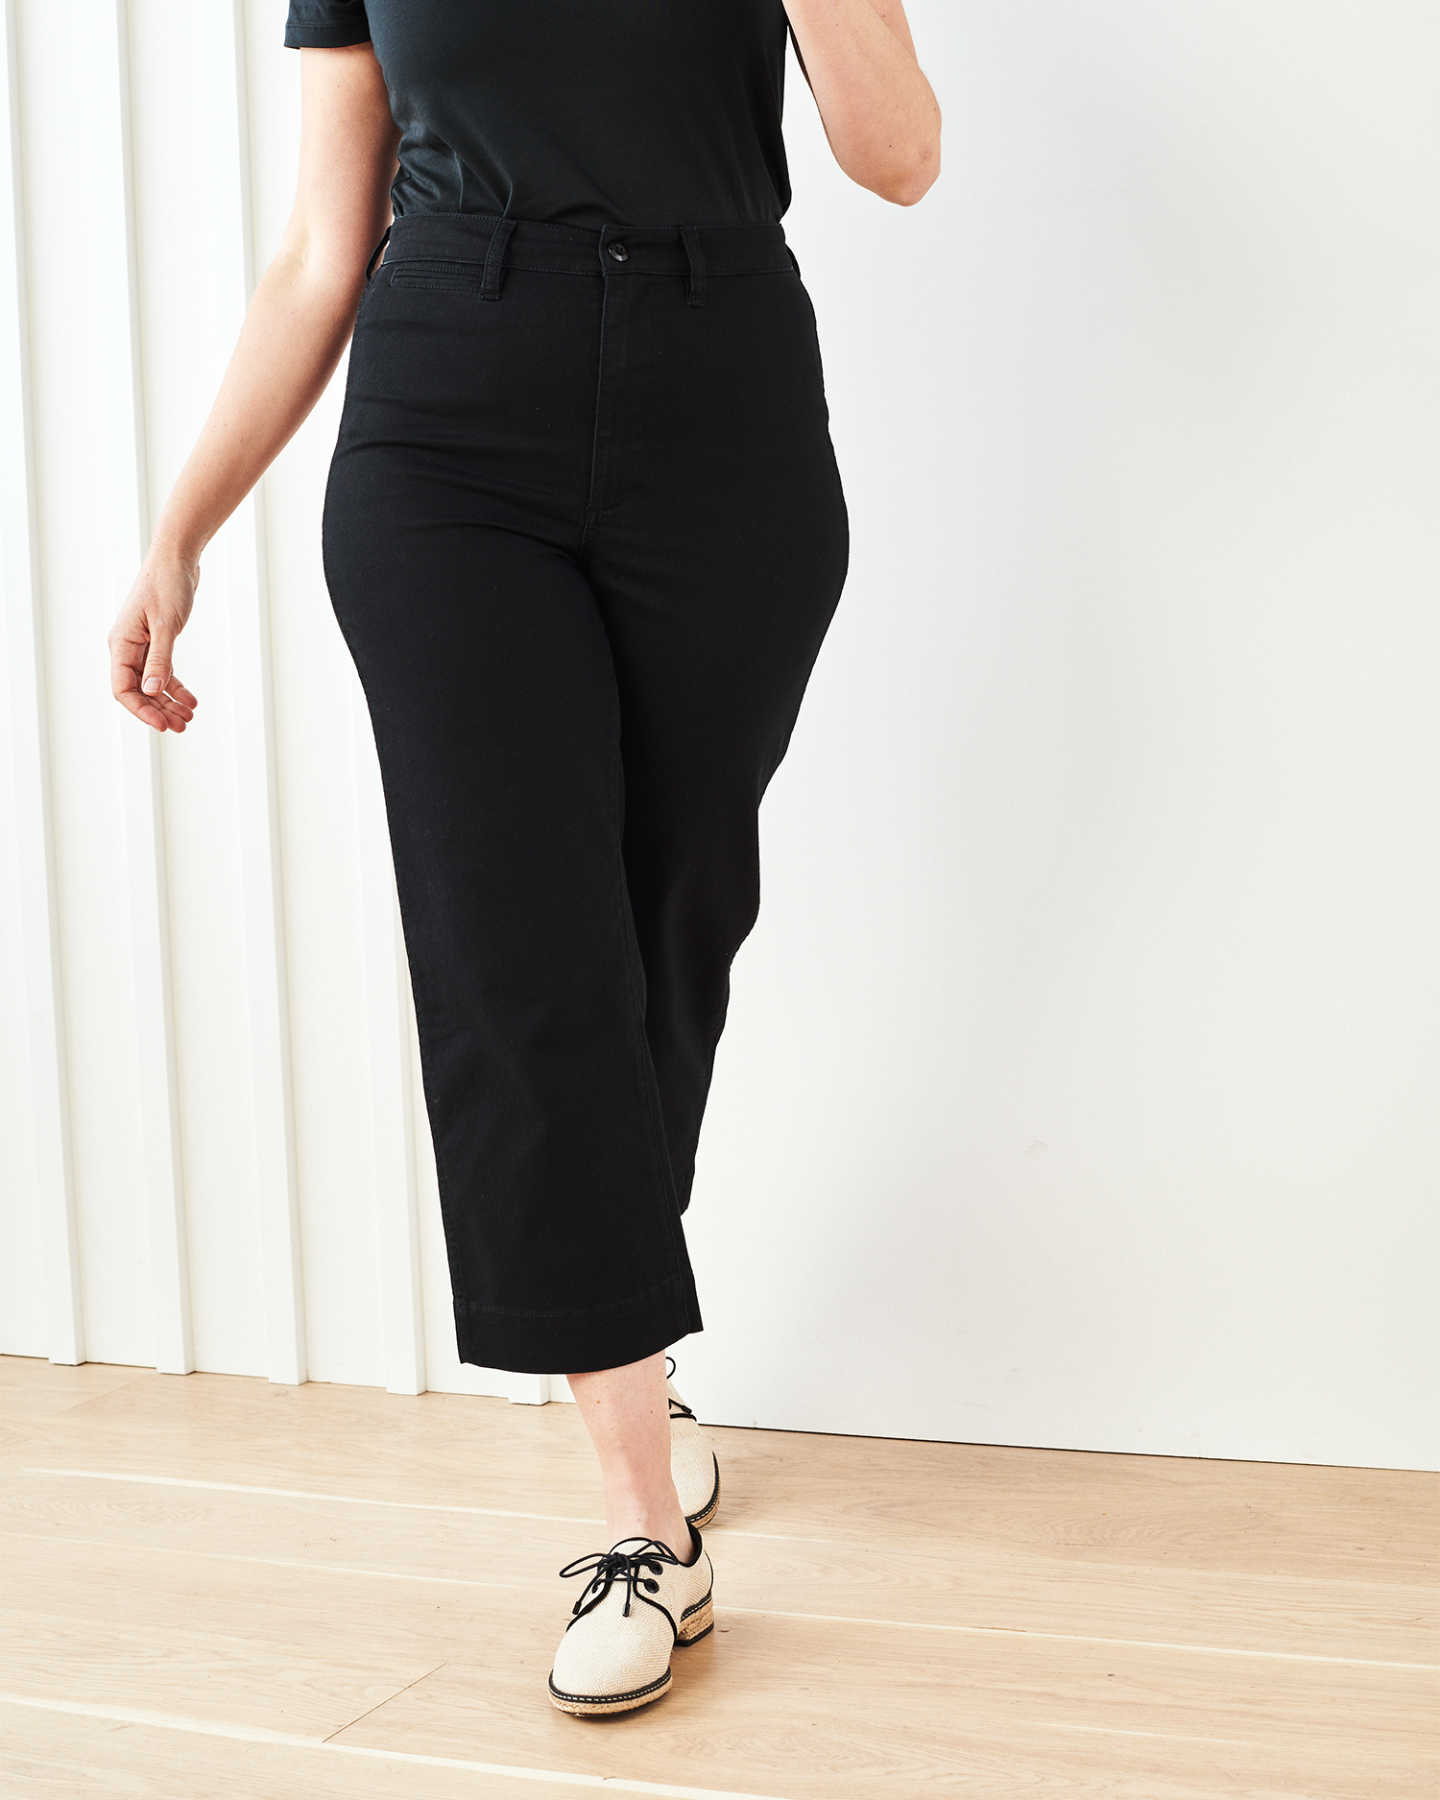 Stretch Cotton Twill Wide-Leg Crop Pant - Black - 2 - Thumbnail